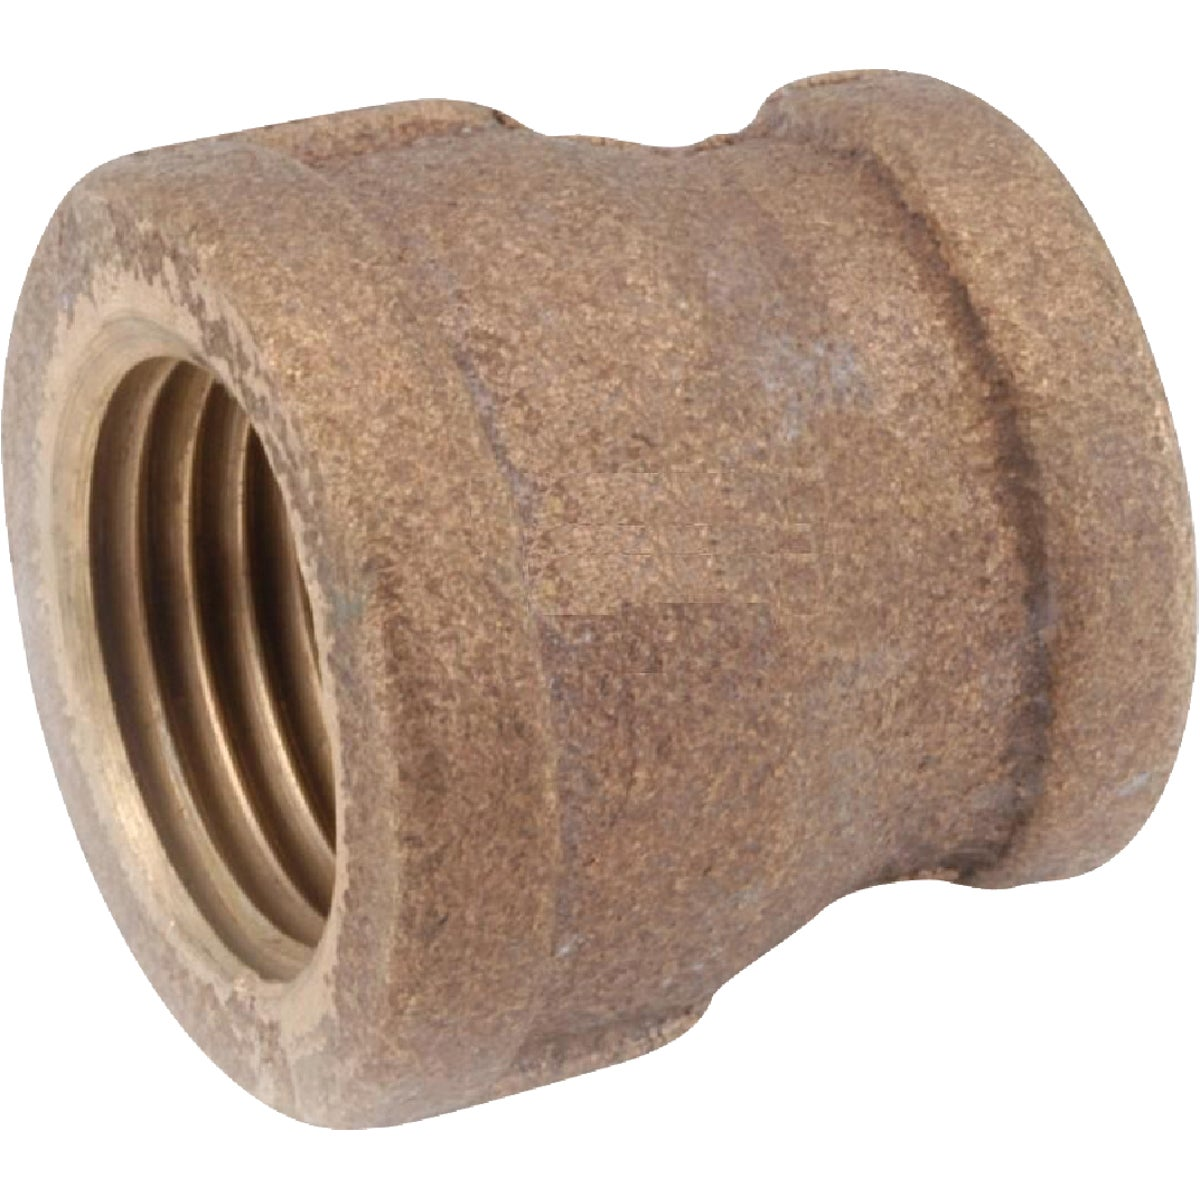 1X3/4 BRASS COUPLING - 738119-1612 by Anderson Metals Corp